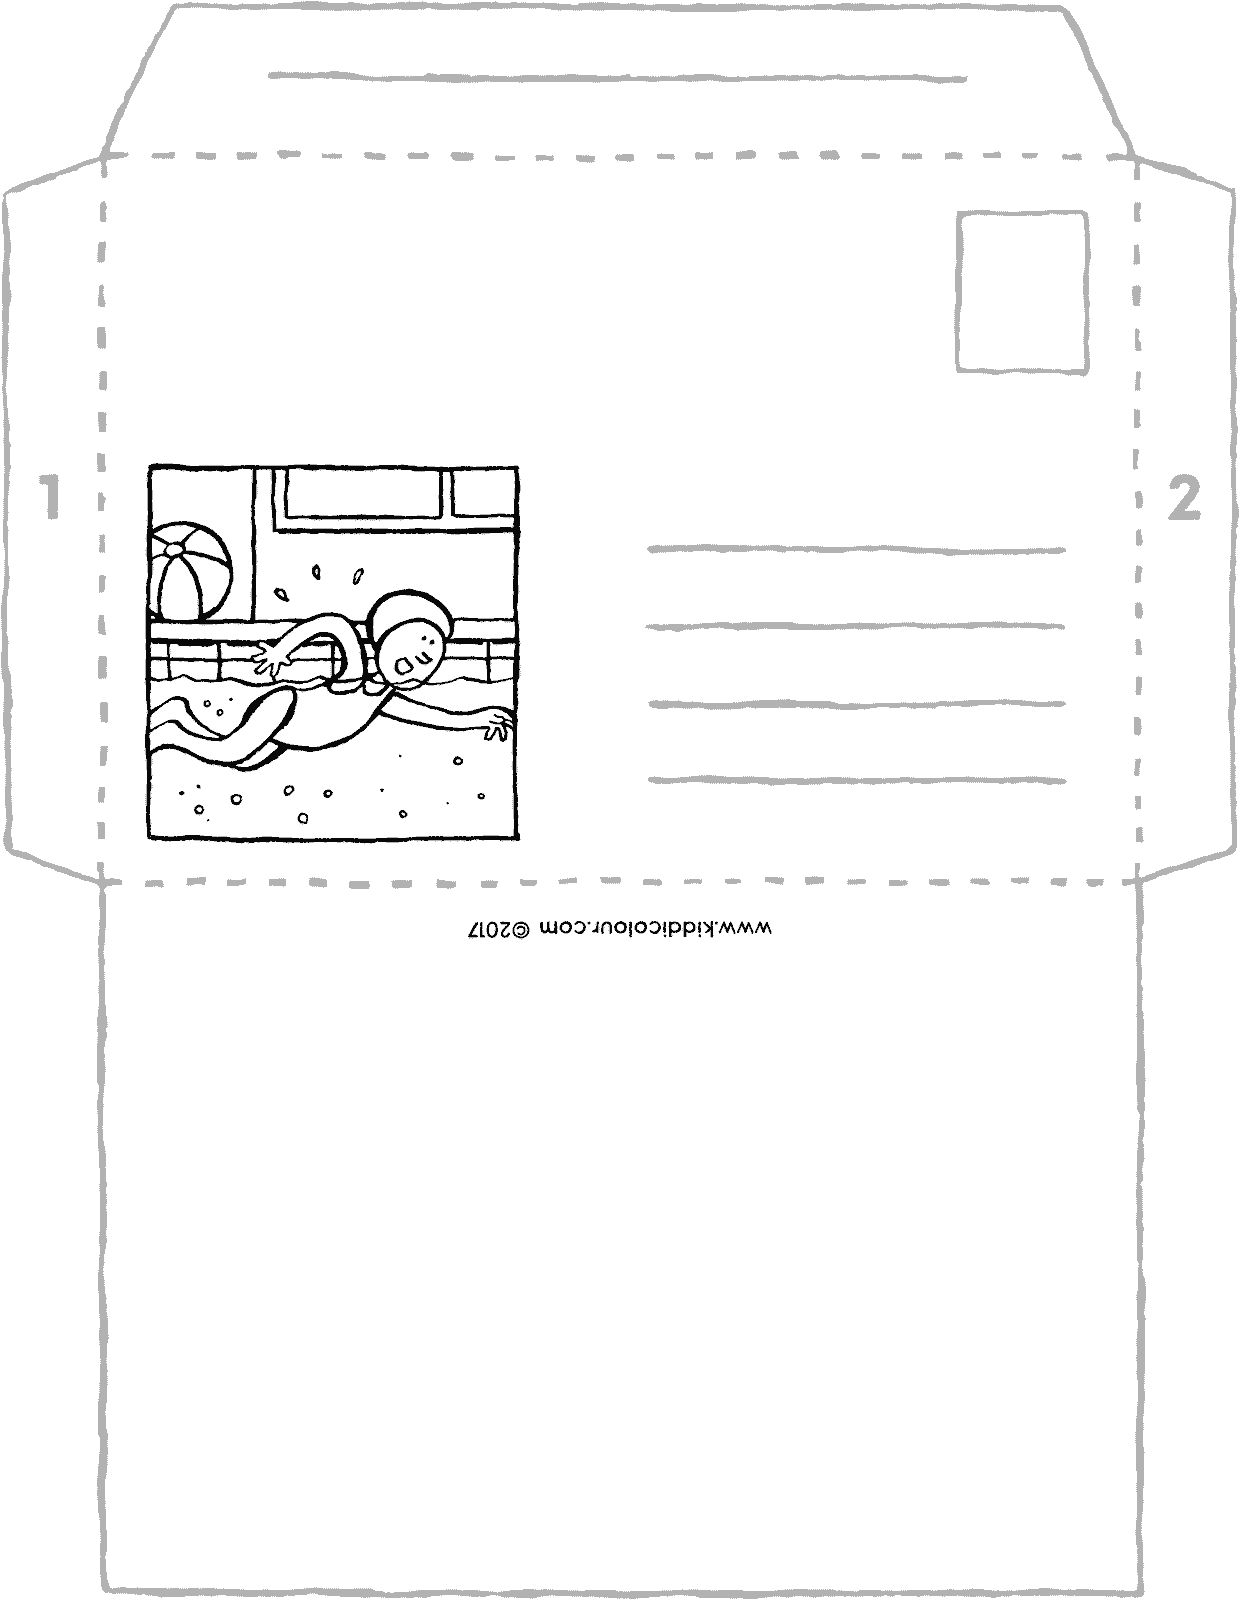 swimming envelope crafts colouring page page drawing picture 01V